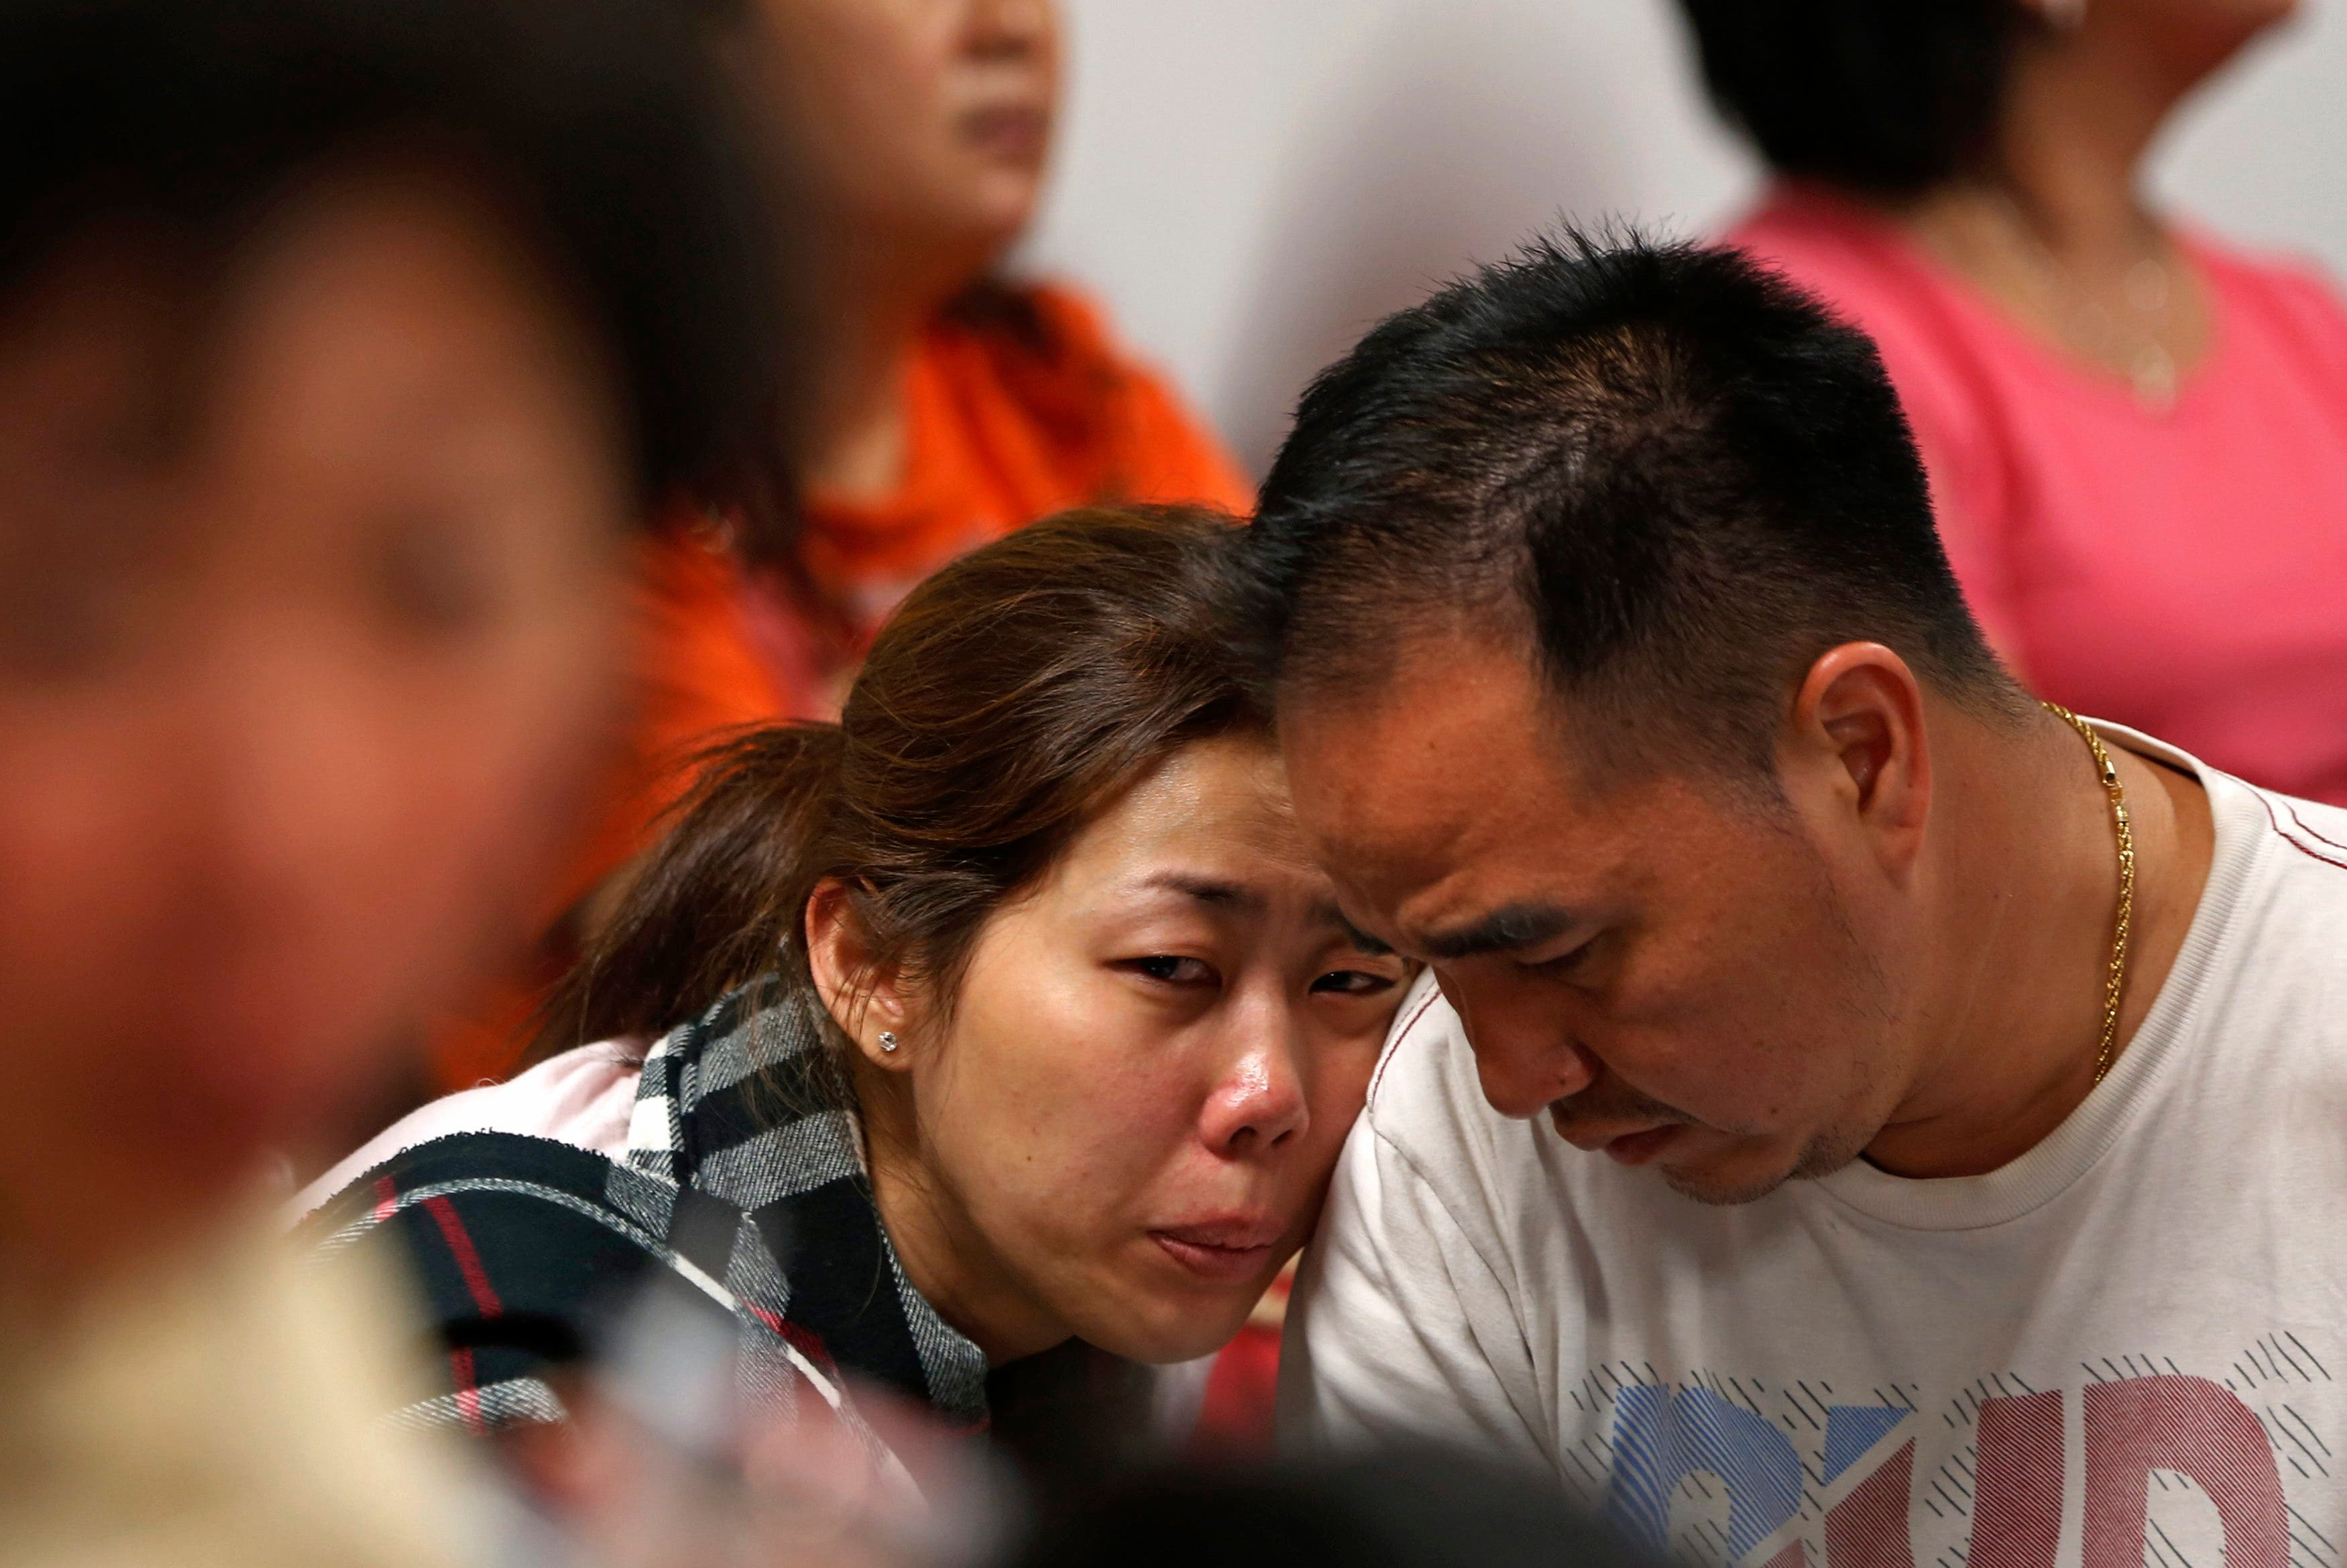 Family of passengers onboard AirAsia flight QZ8501 react at a waiting area in Juanda International Airport, Surabaya December 28, 2014. (Reuters)